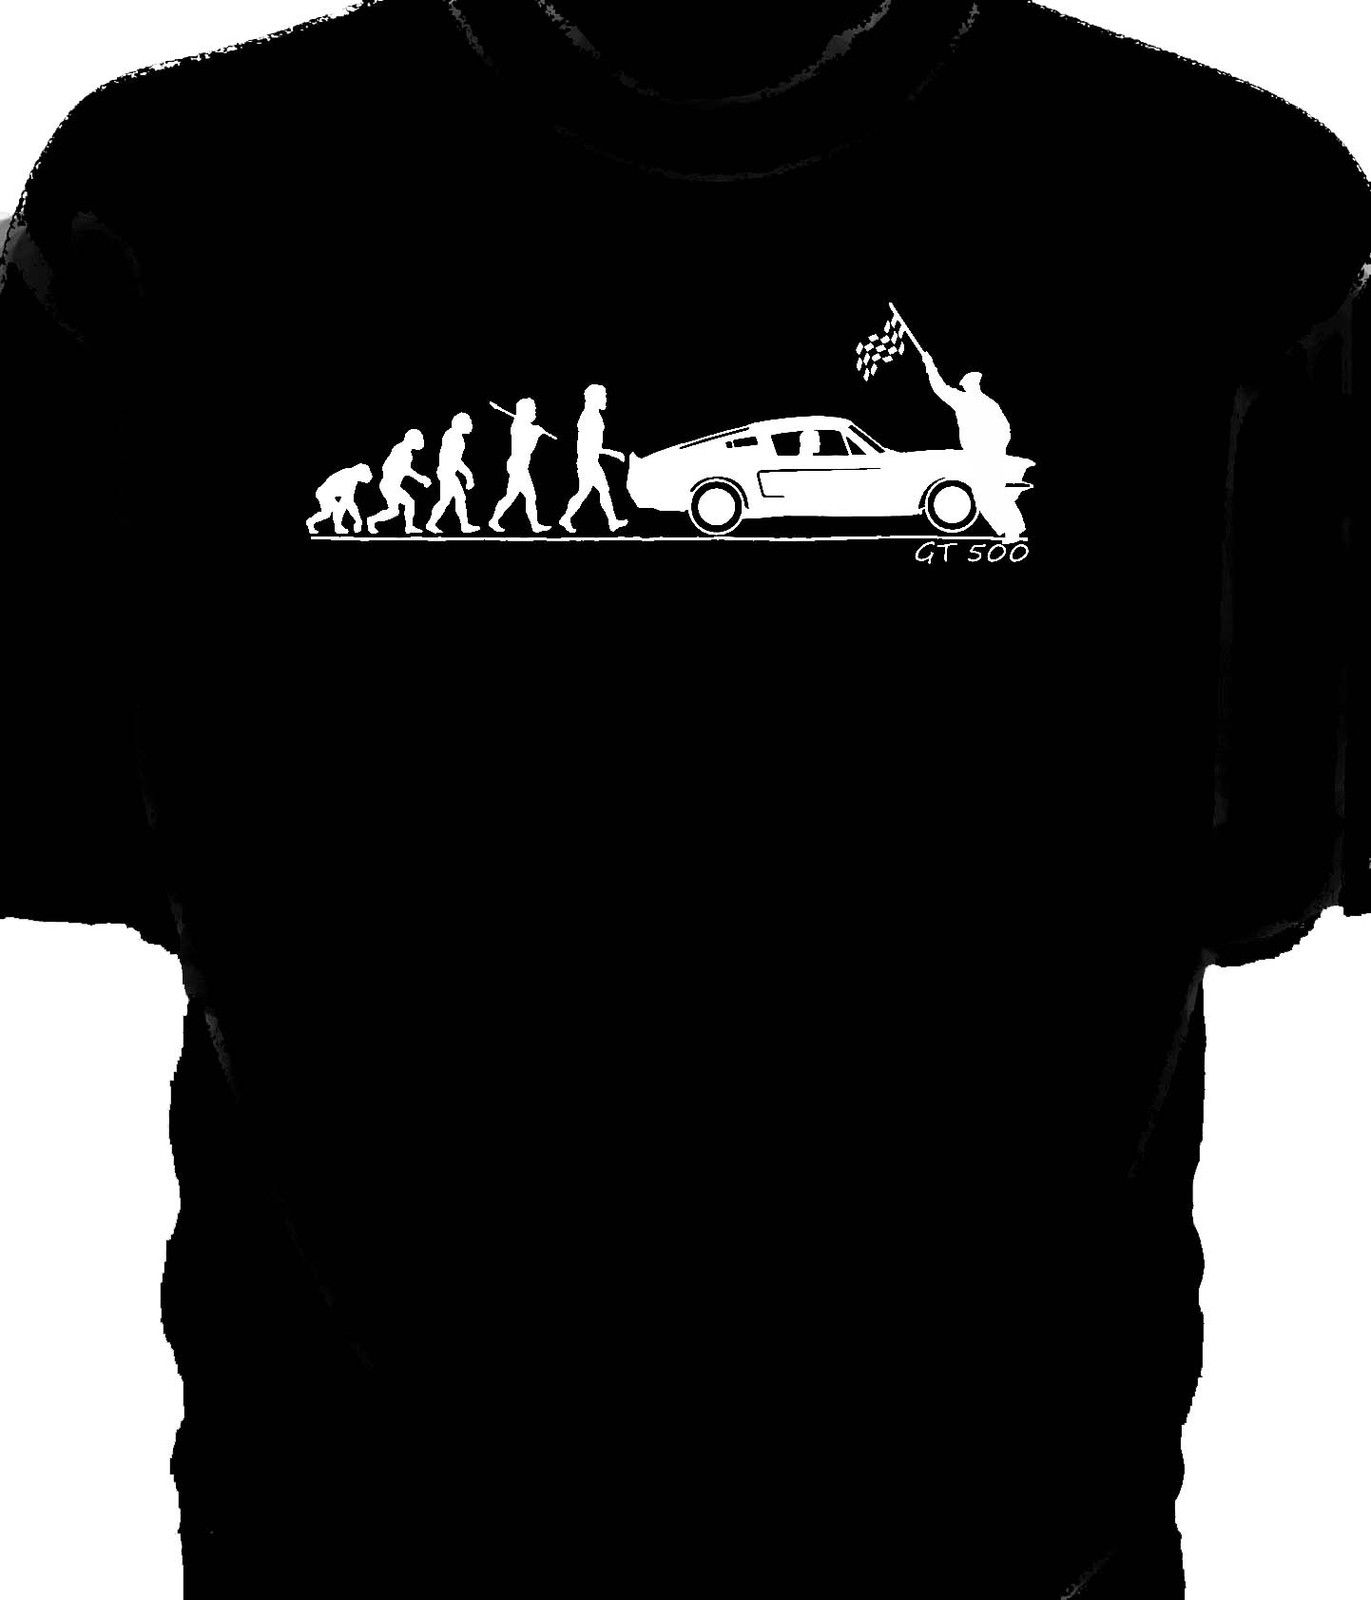 Clothes, Shoes & Accessories I Don`t Snore I Dream I`m A Eleanor Shelby Mustang Gt 500 196 Kids Car T-shirt Kids' Clothes, Shoes & Accs.